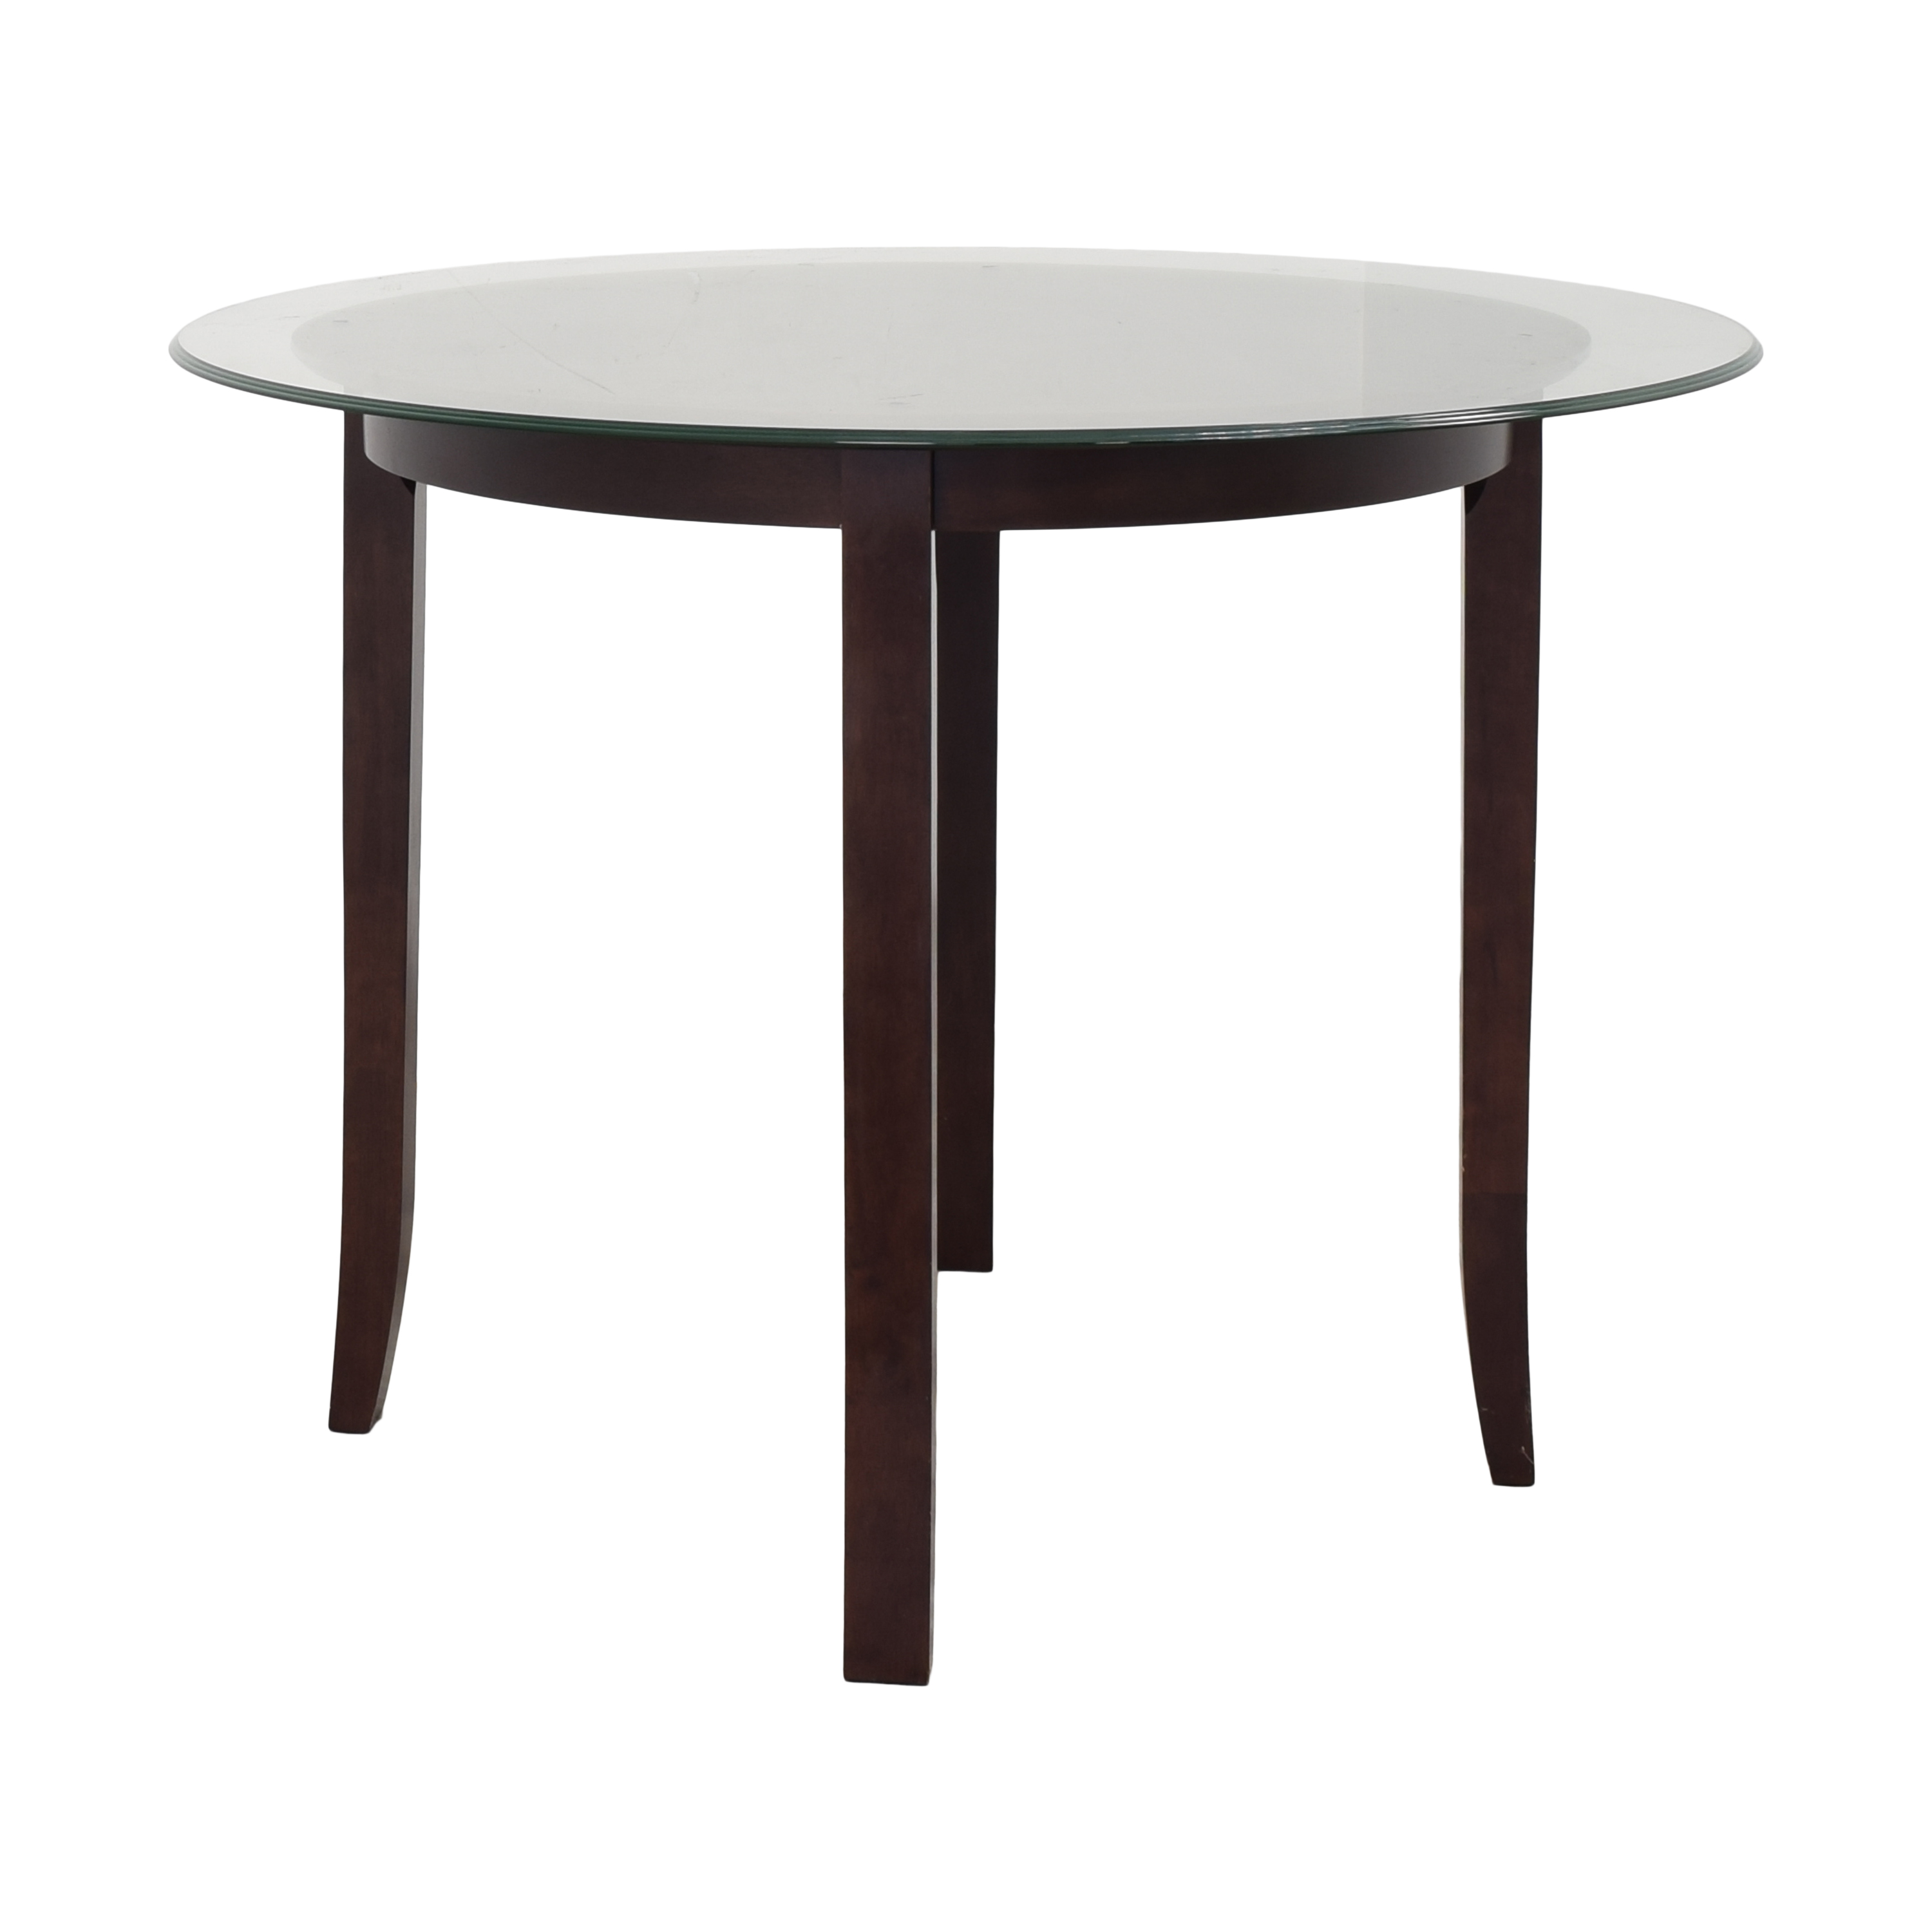 Rooms To Go Rooms To Go Keefer High Top Dining Room Table Dinner Tables